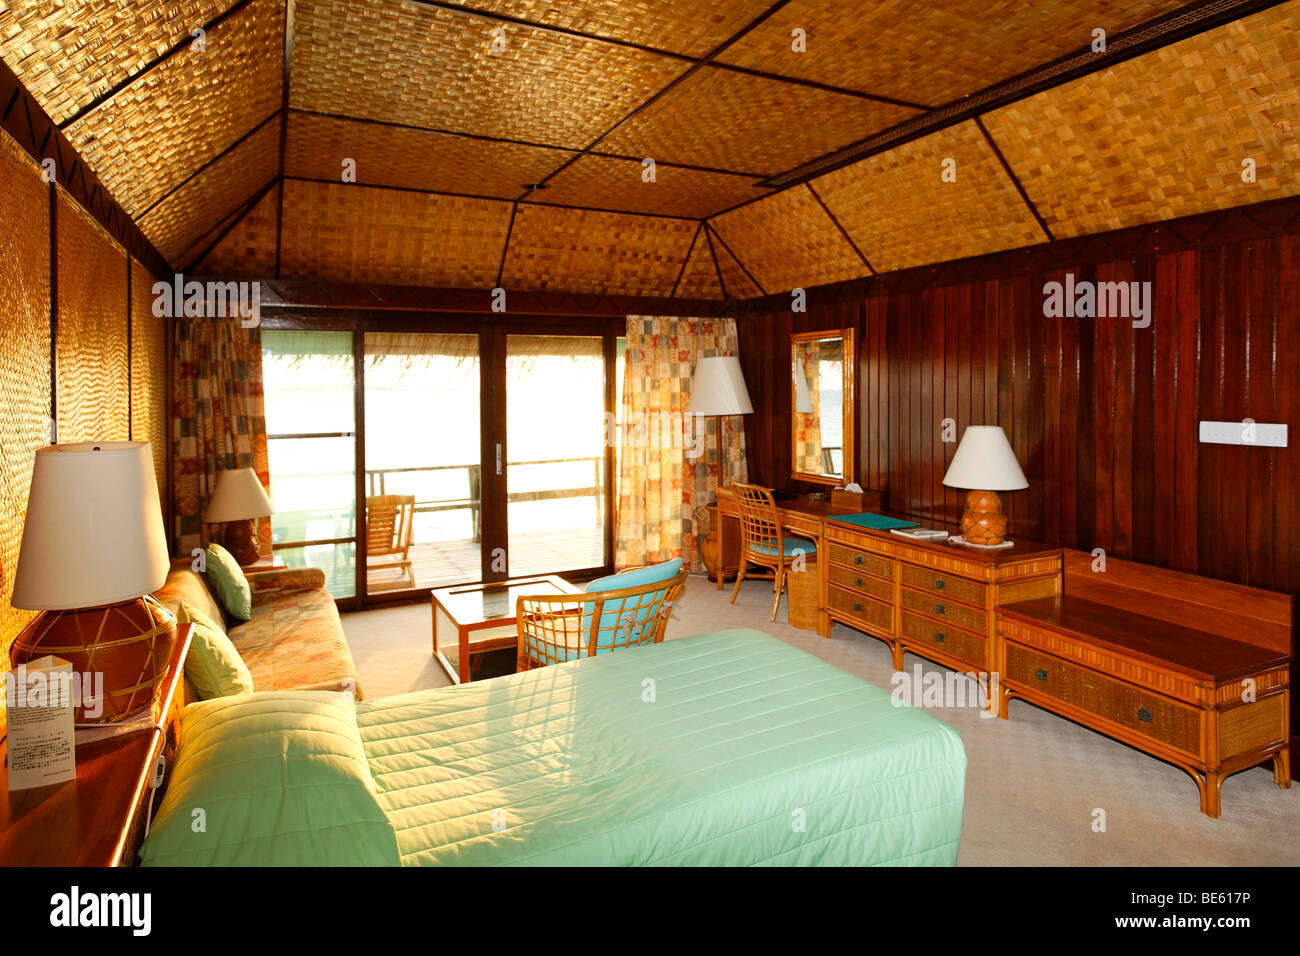 https://c8.alamy.com/compde/be617p/wasser-bungalow-interieur-vadoo-insel-sud-male-atoll-malediven-archipel-indischen-ozean-asien-be617p.jpg